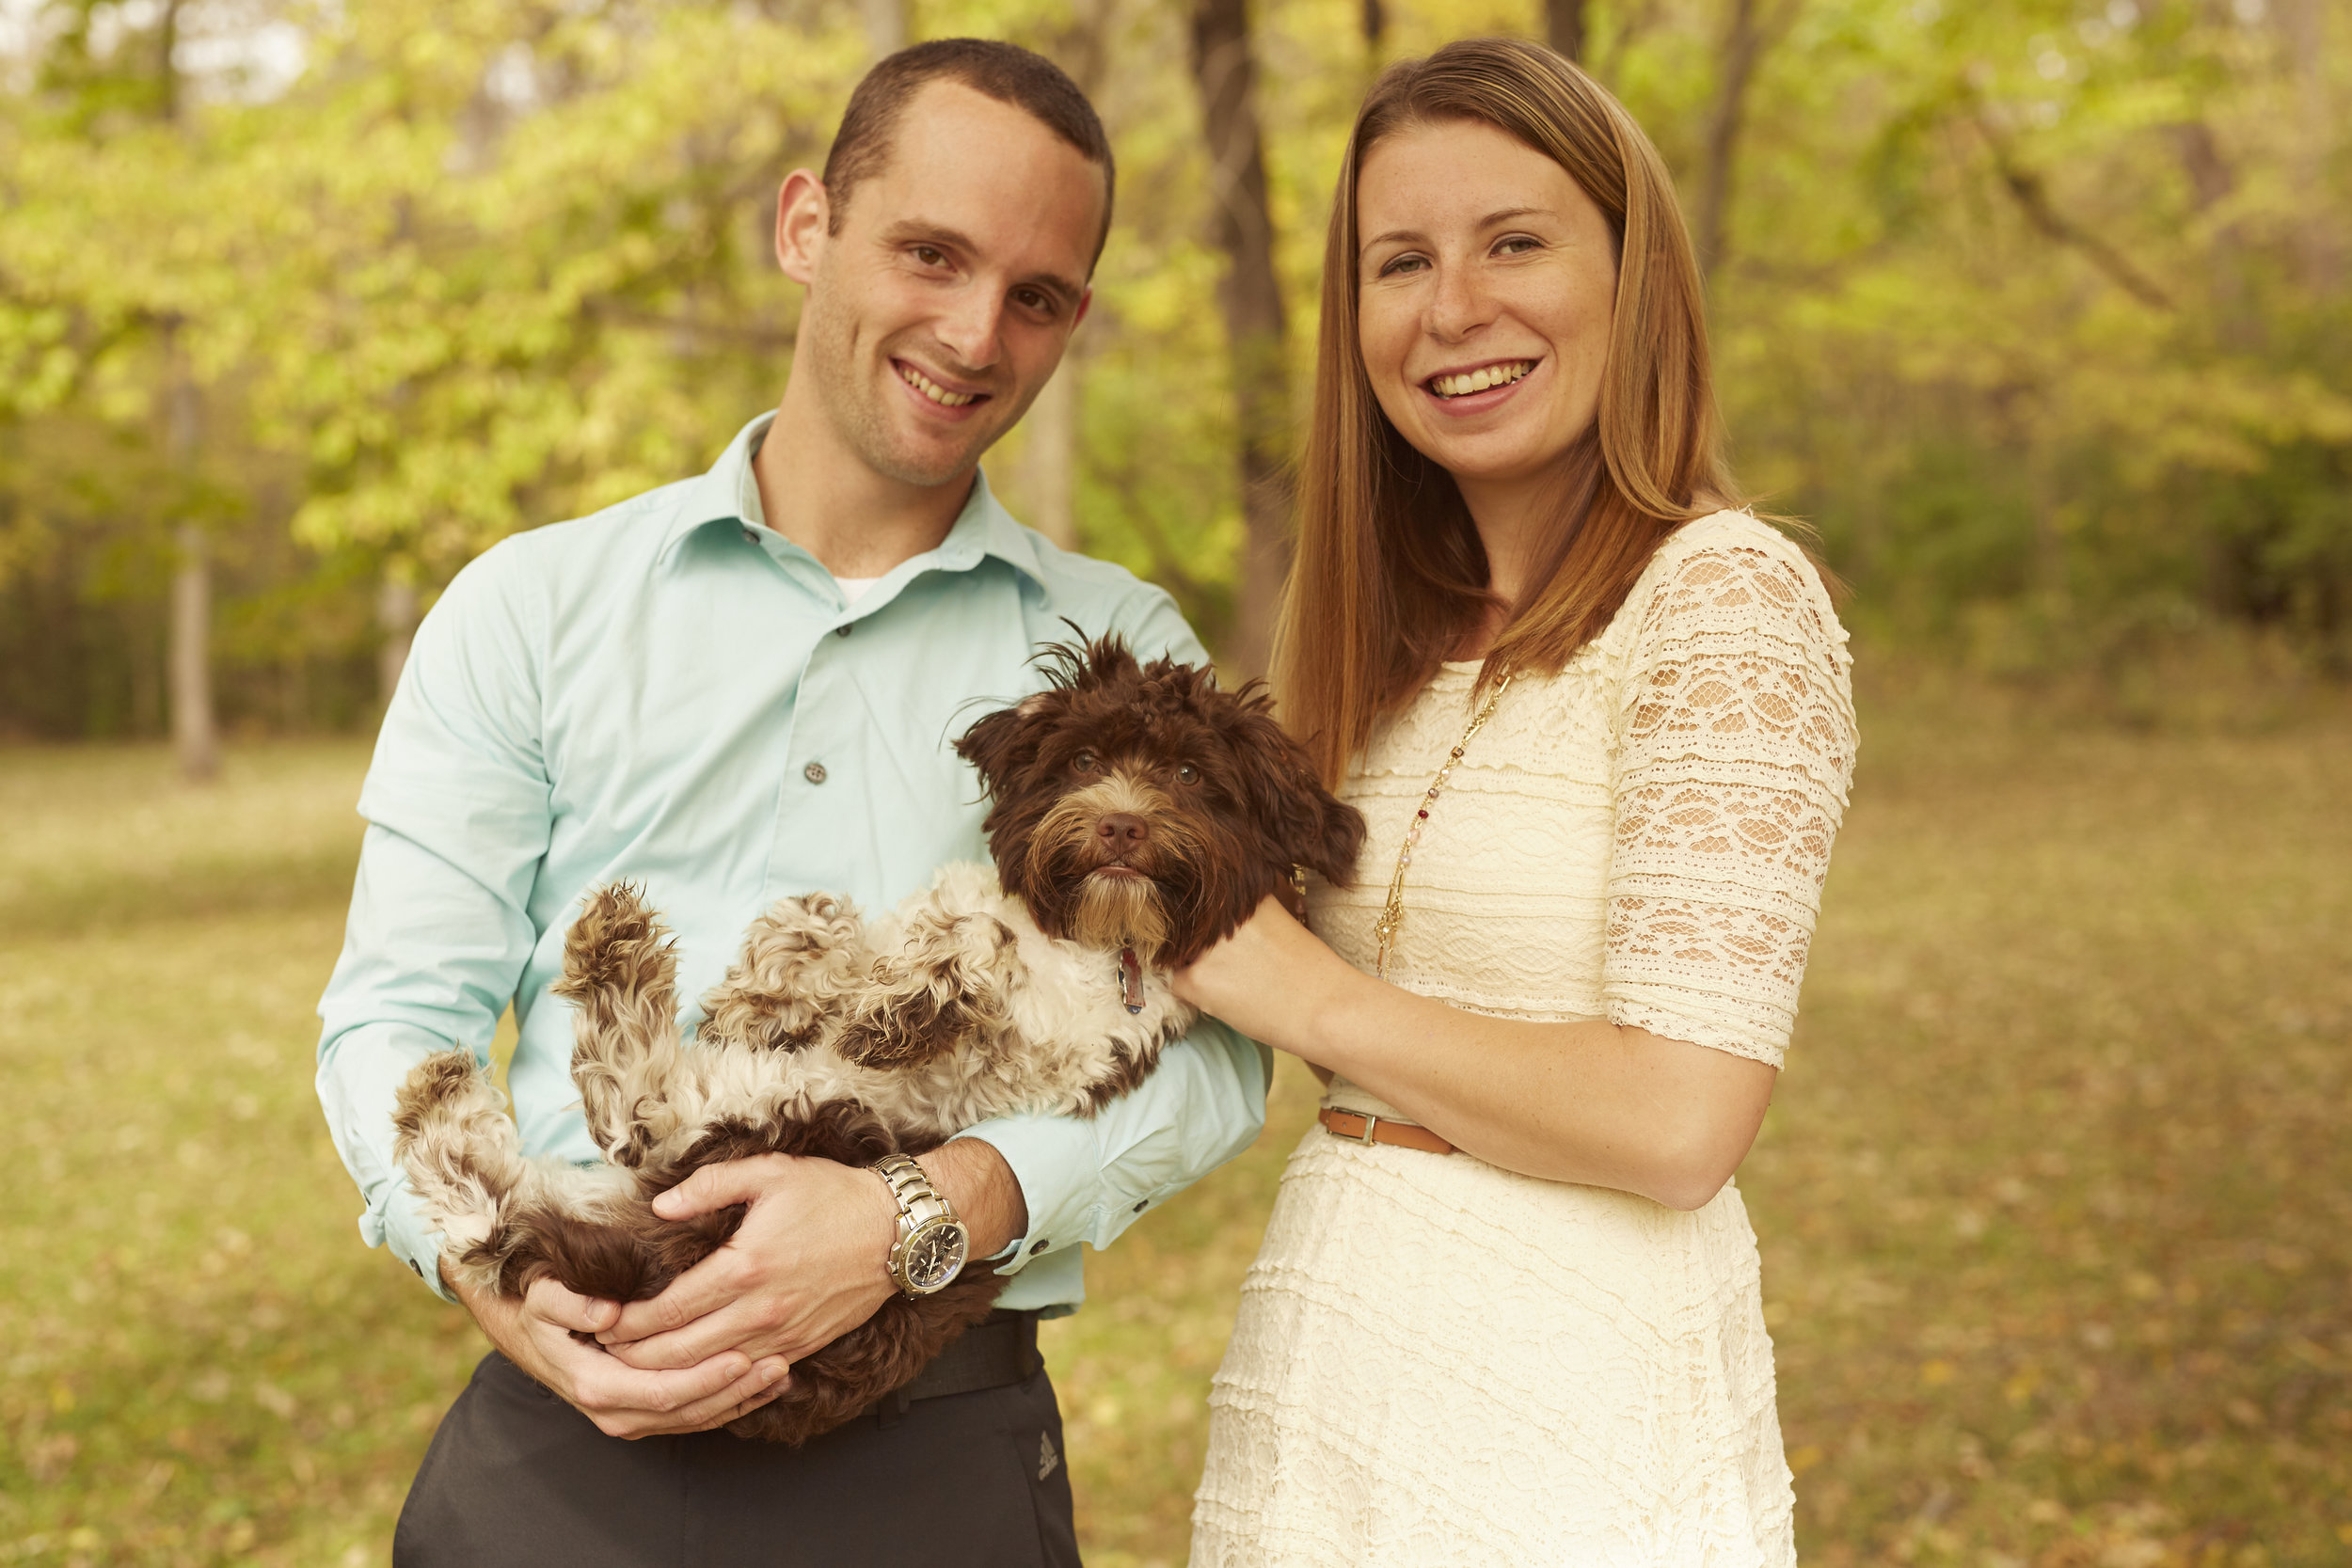 outdoor engaged couple with pet dog